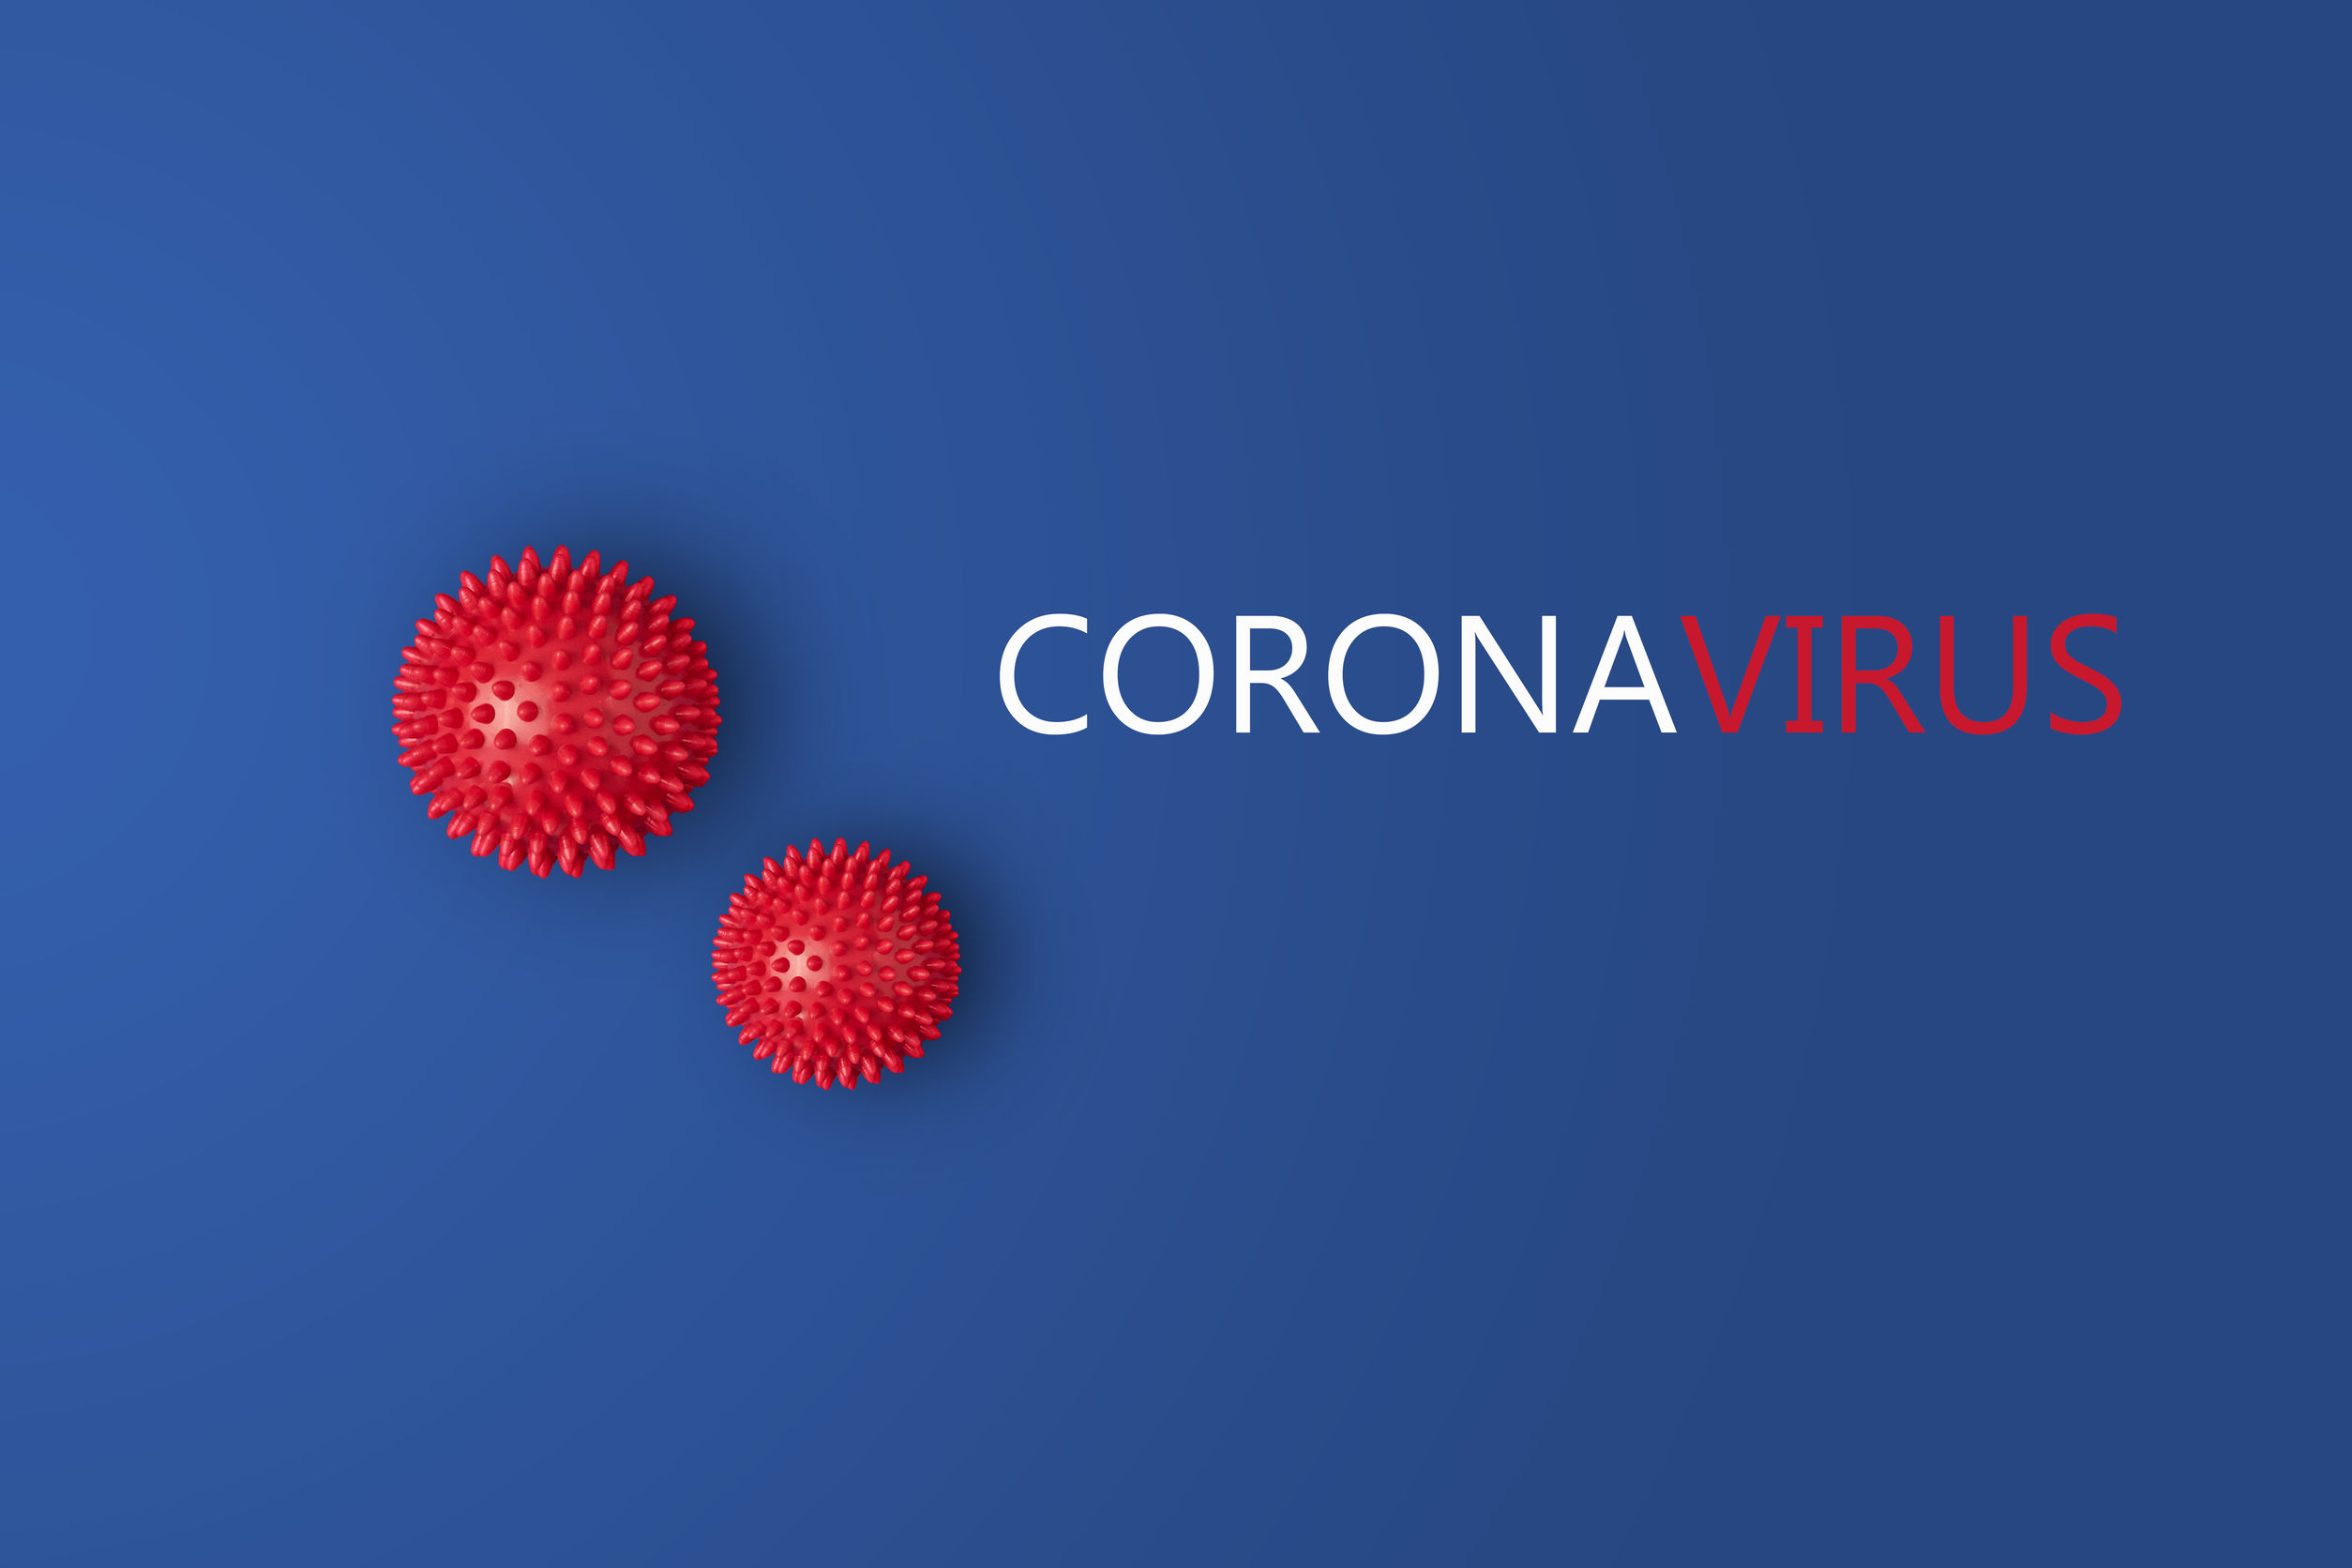 Coronavirus Q&A to Keep You Safer